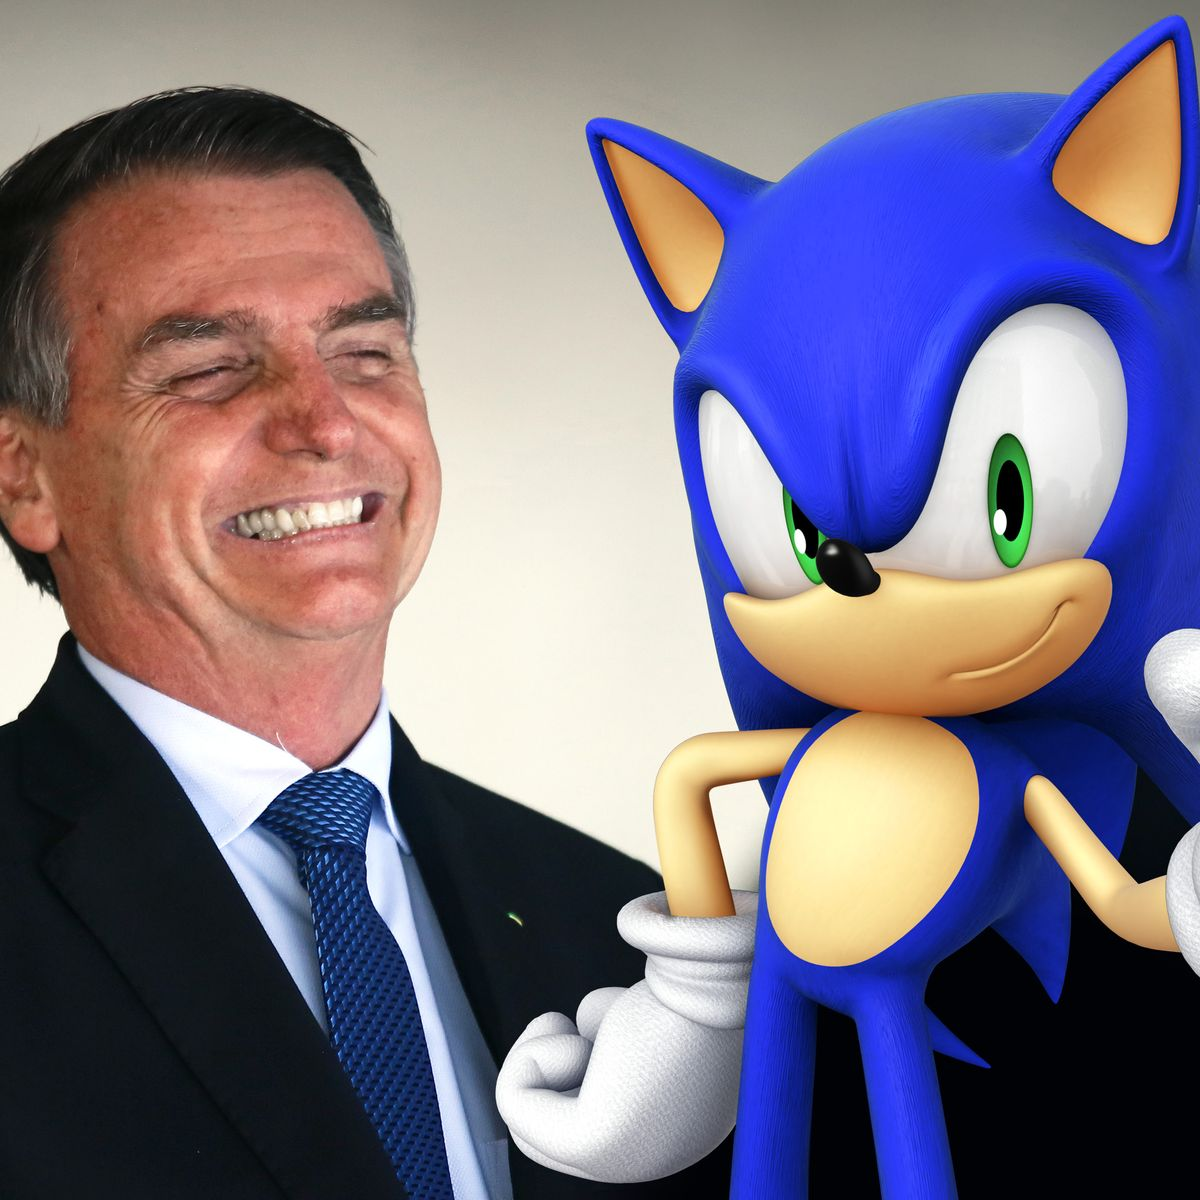 Brazil President S Video Uses Music From Sonic The Hedgehog